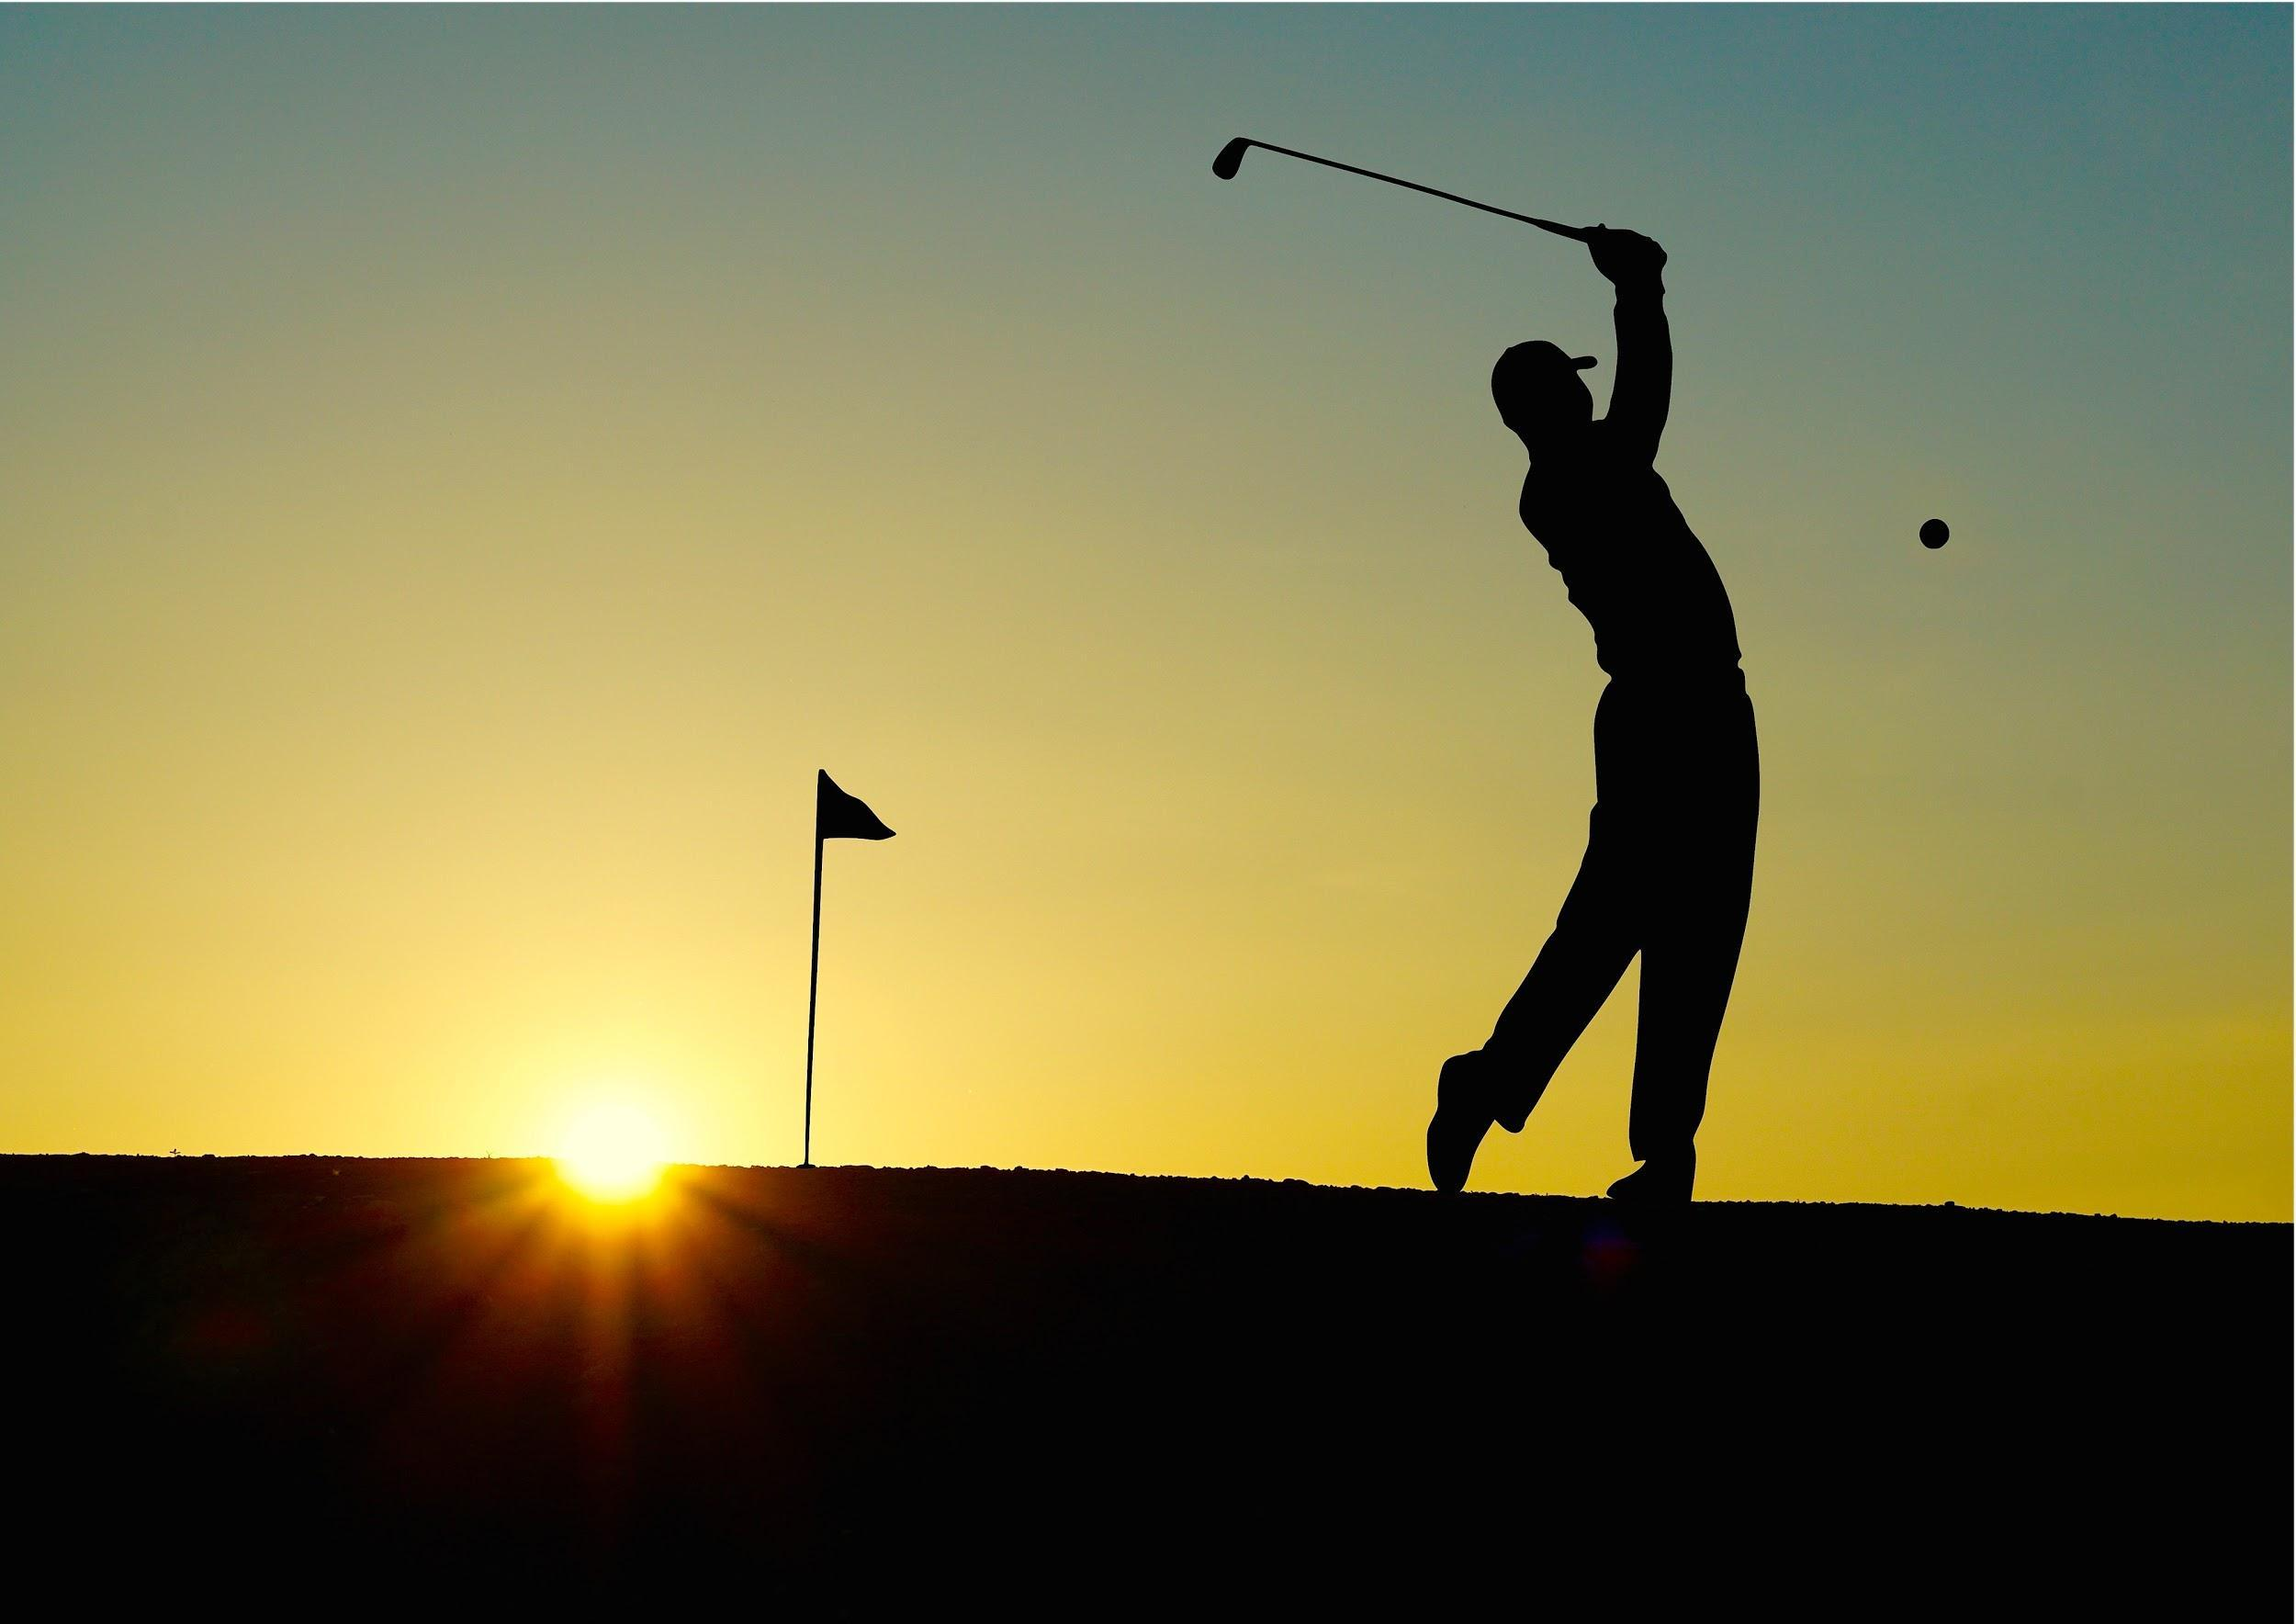 golfer playing golf during beautiful sunset